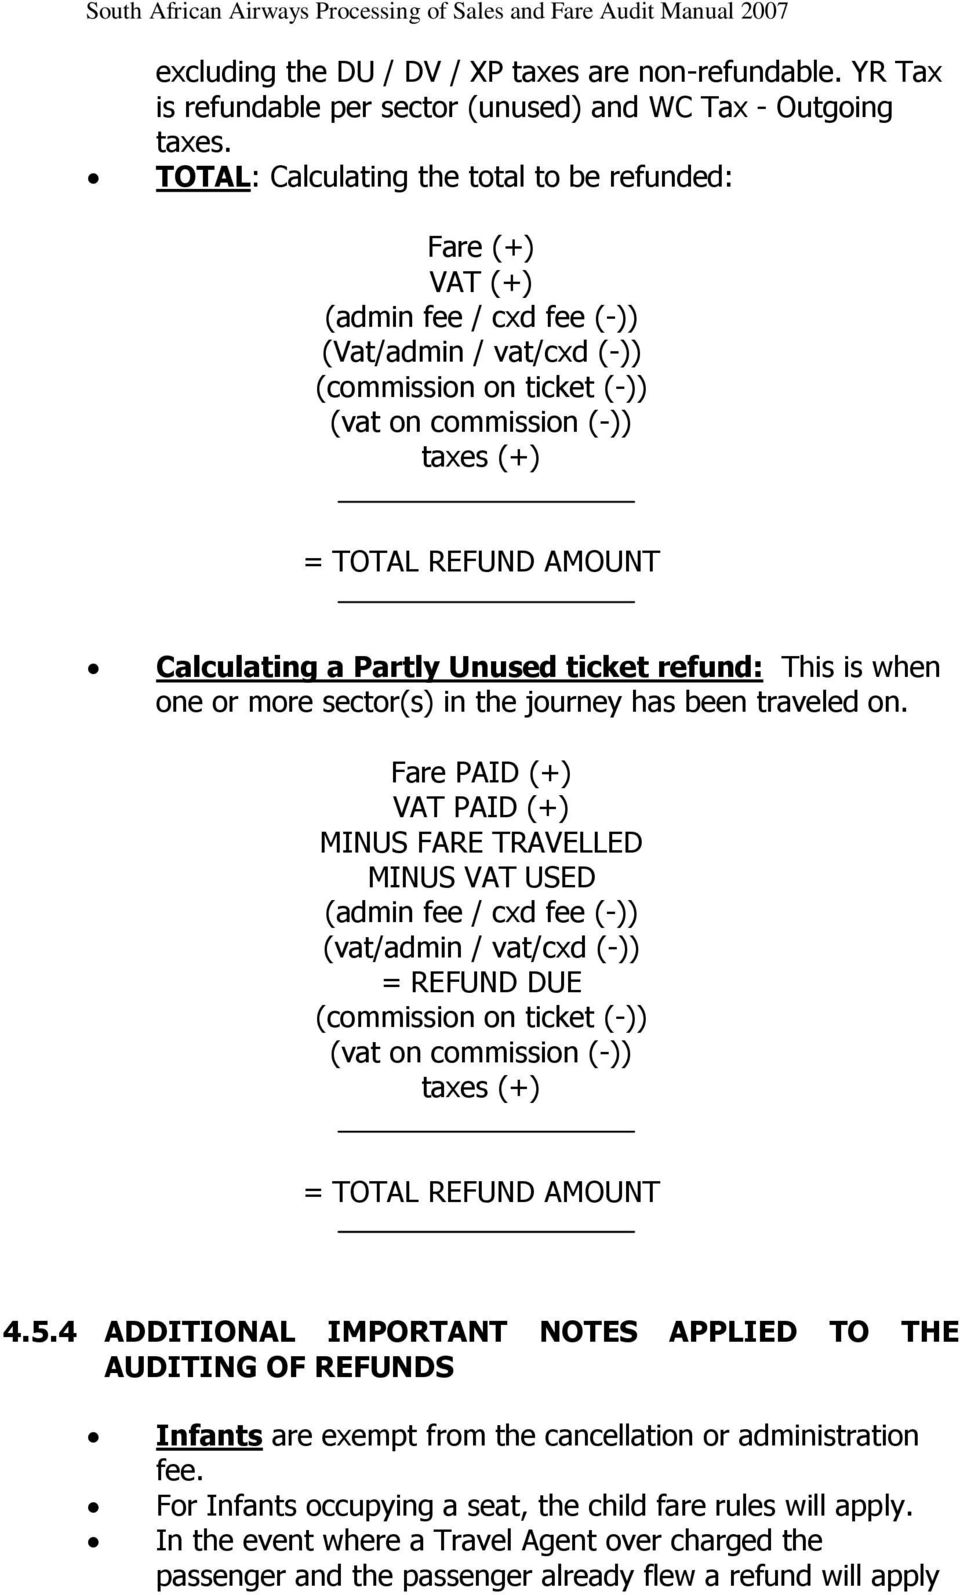 Calculating a Partly Unused ticket refund: This is when one or more sector(s) in the journey has been traveled on.